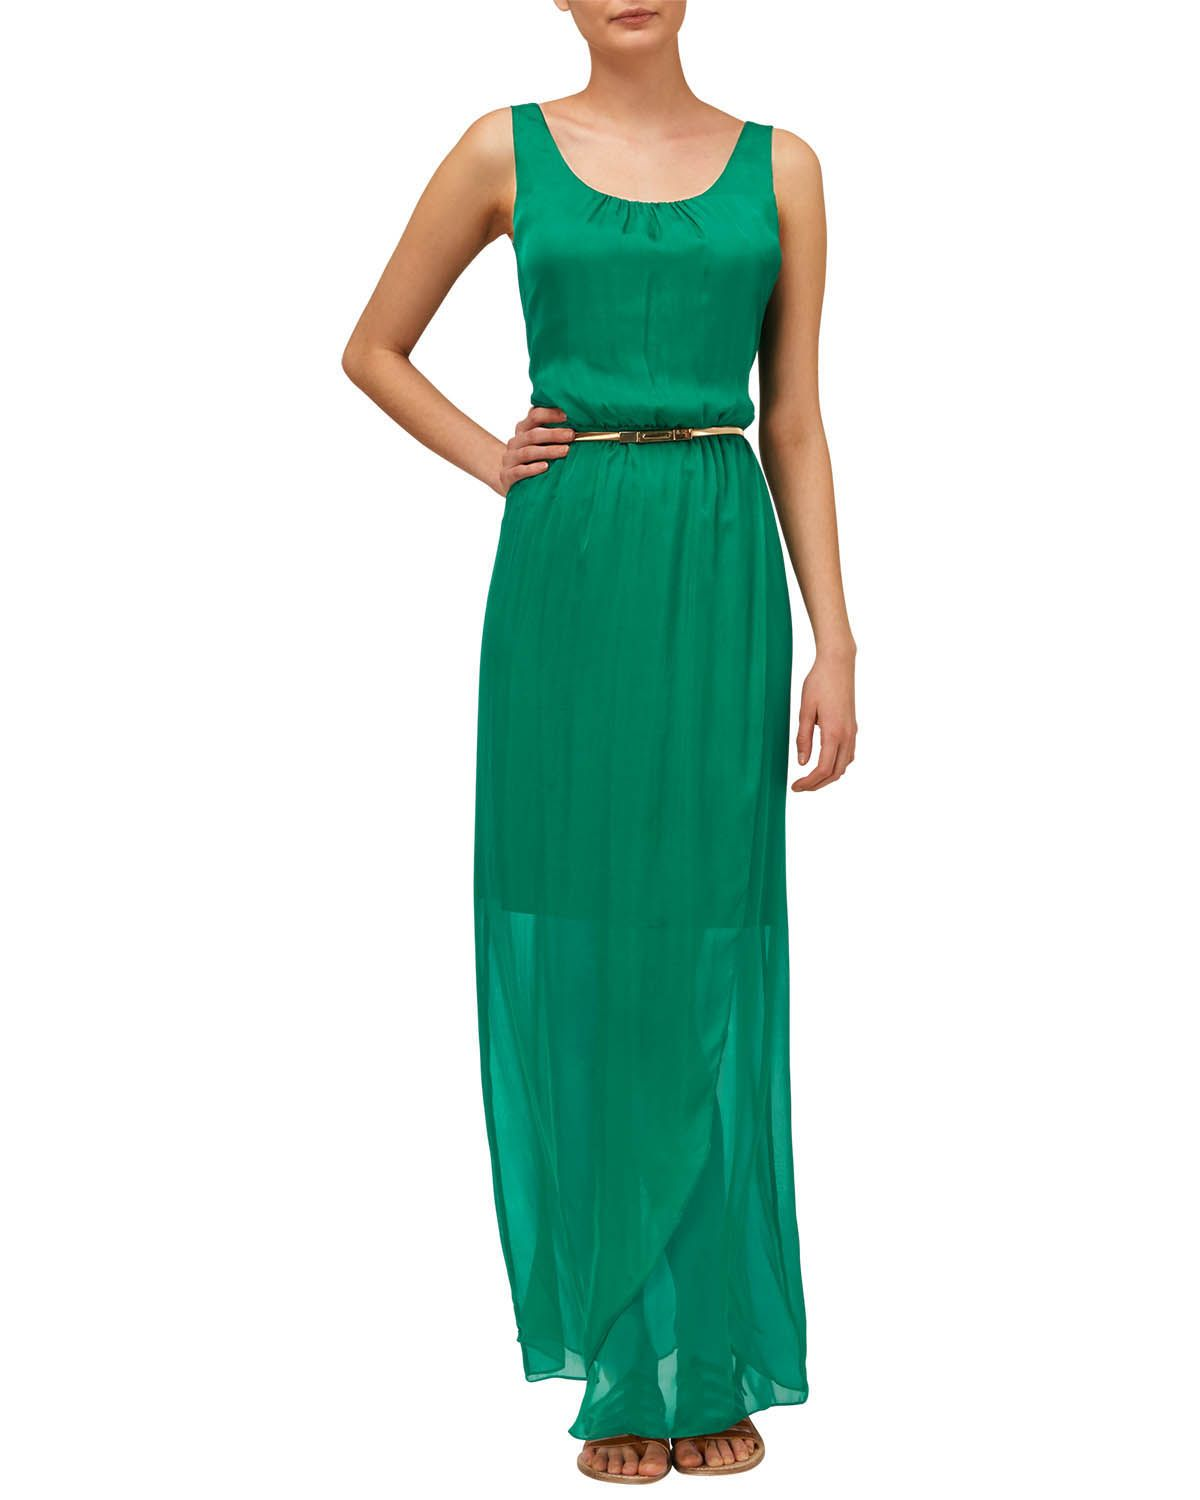 Dresses | Green Elsa Silk Maxi Dress | Phase Eight | Outfits ...